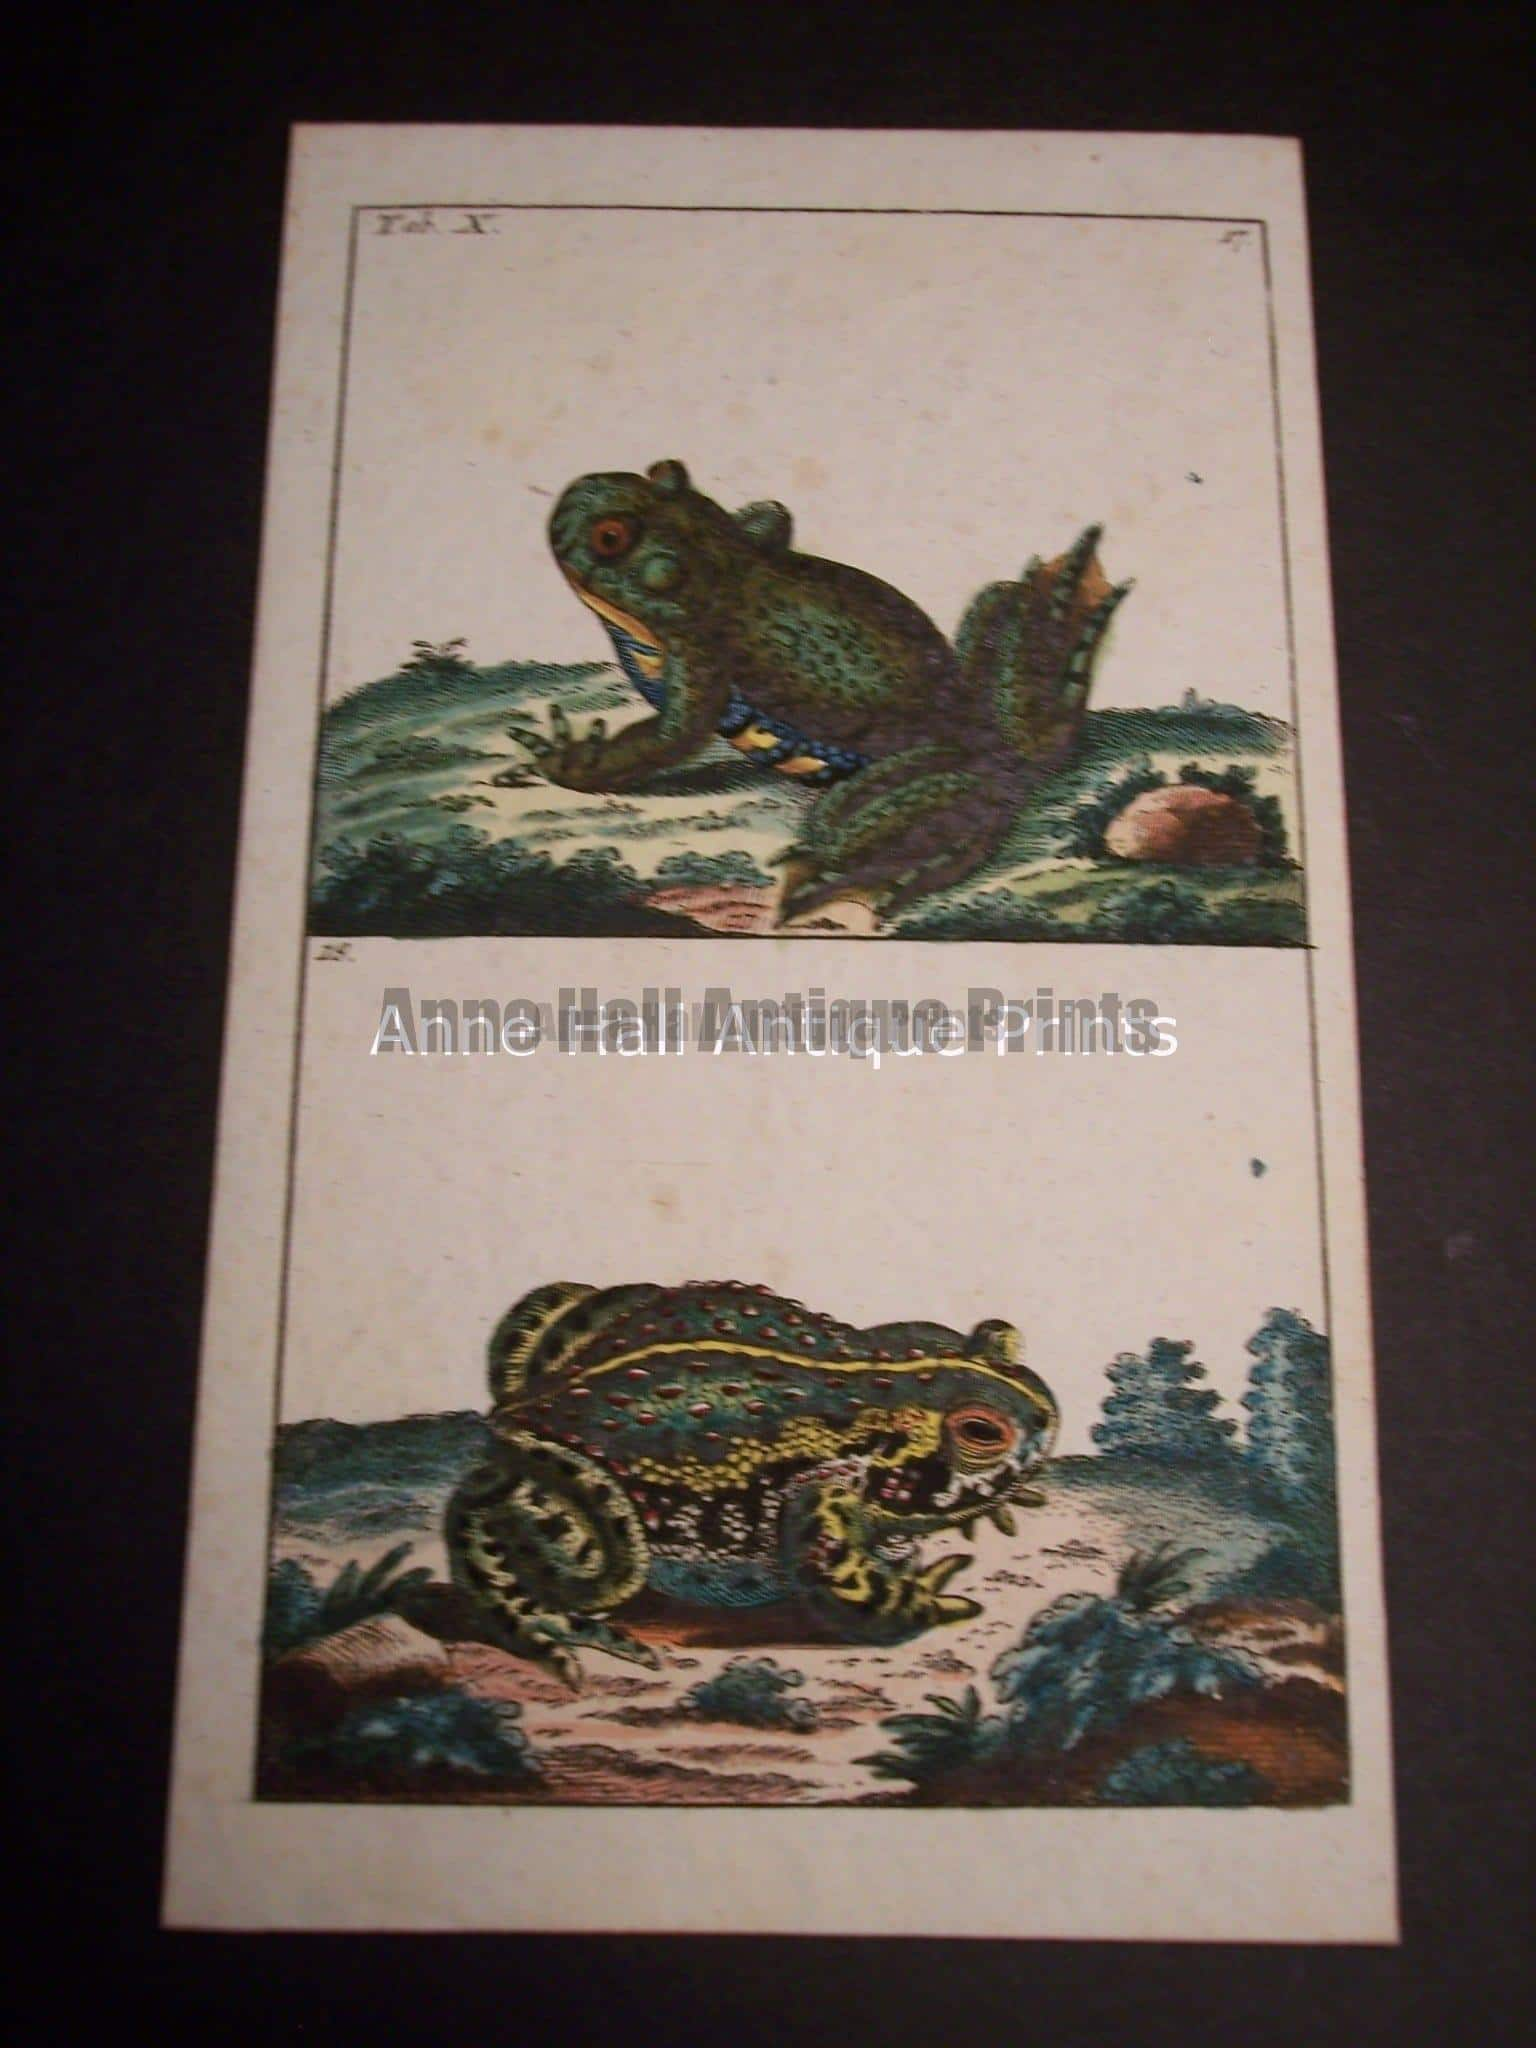 Wilhelm Frog Hand Colored Engraving 0394 $75.